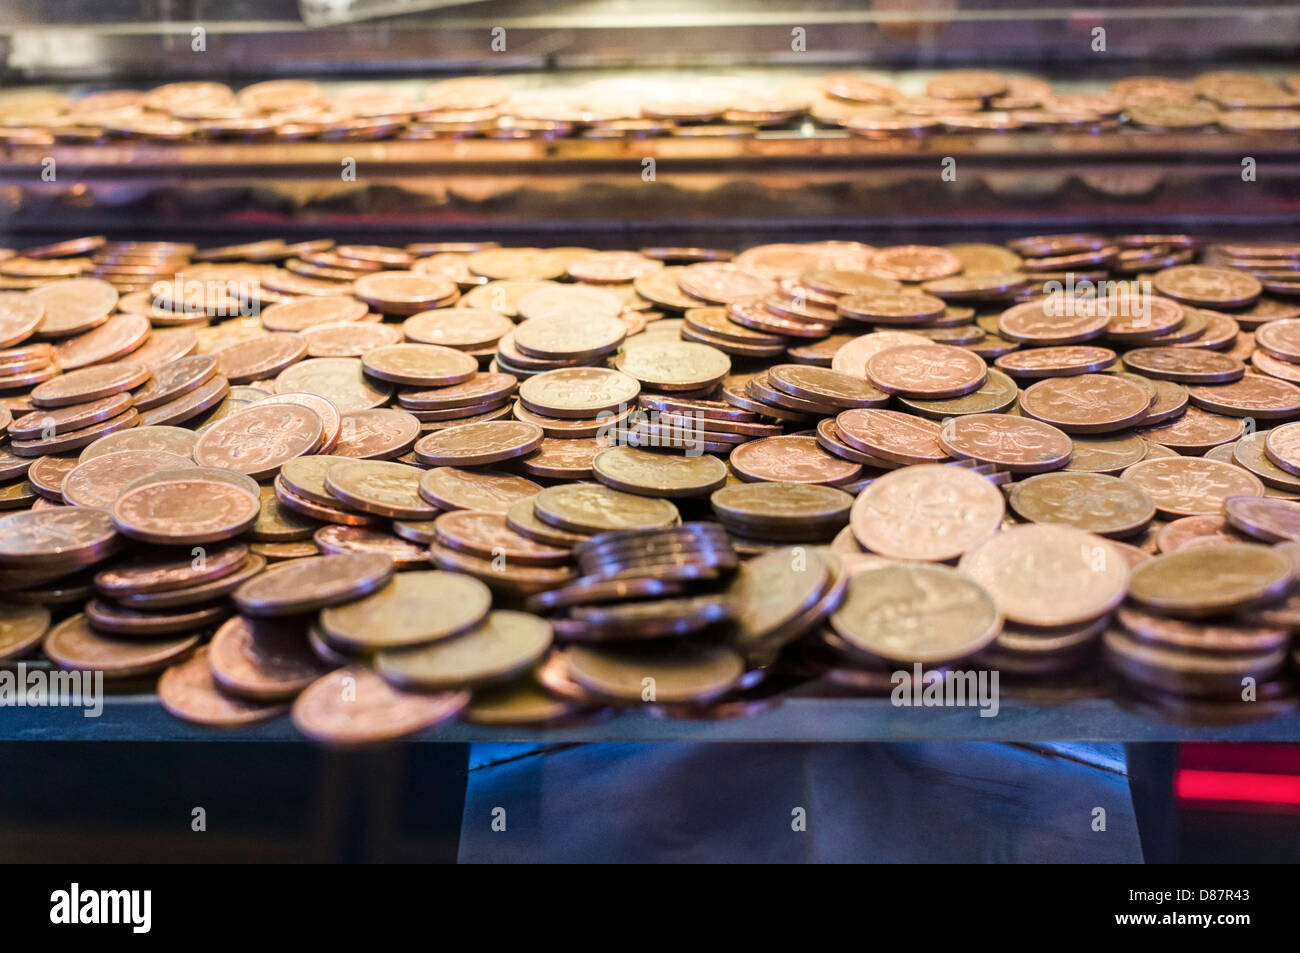 Close up of 2p pieces in an amusement arcade penny falls machine game, UK - Stock Image